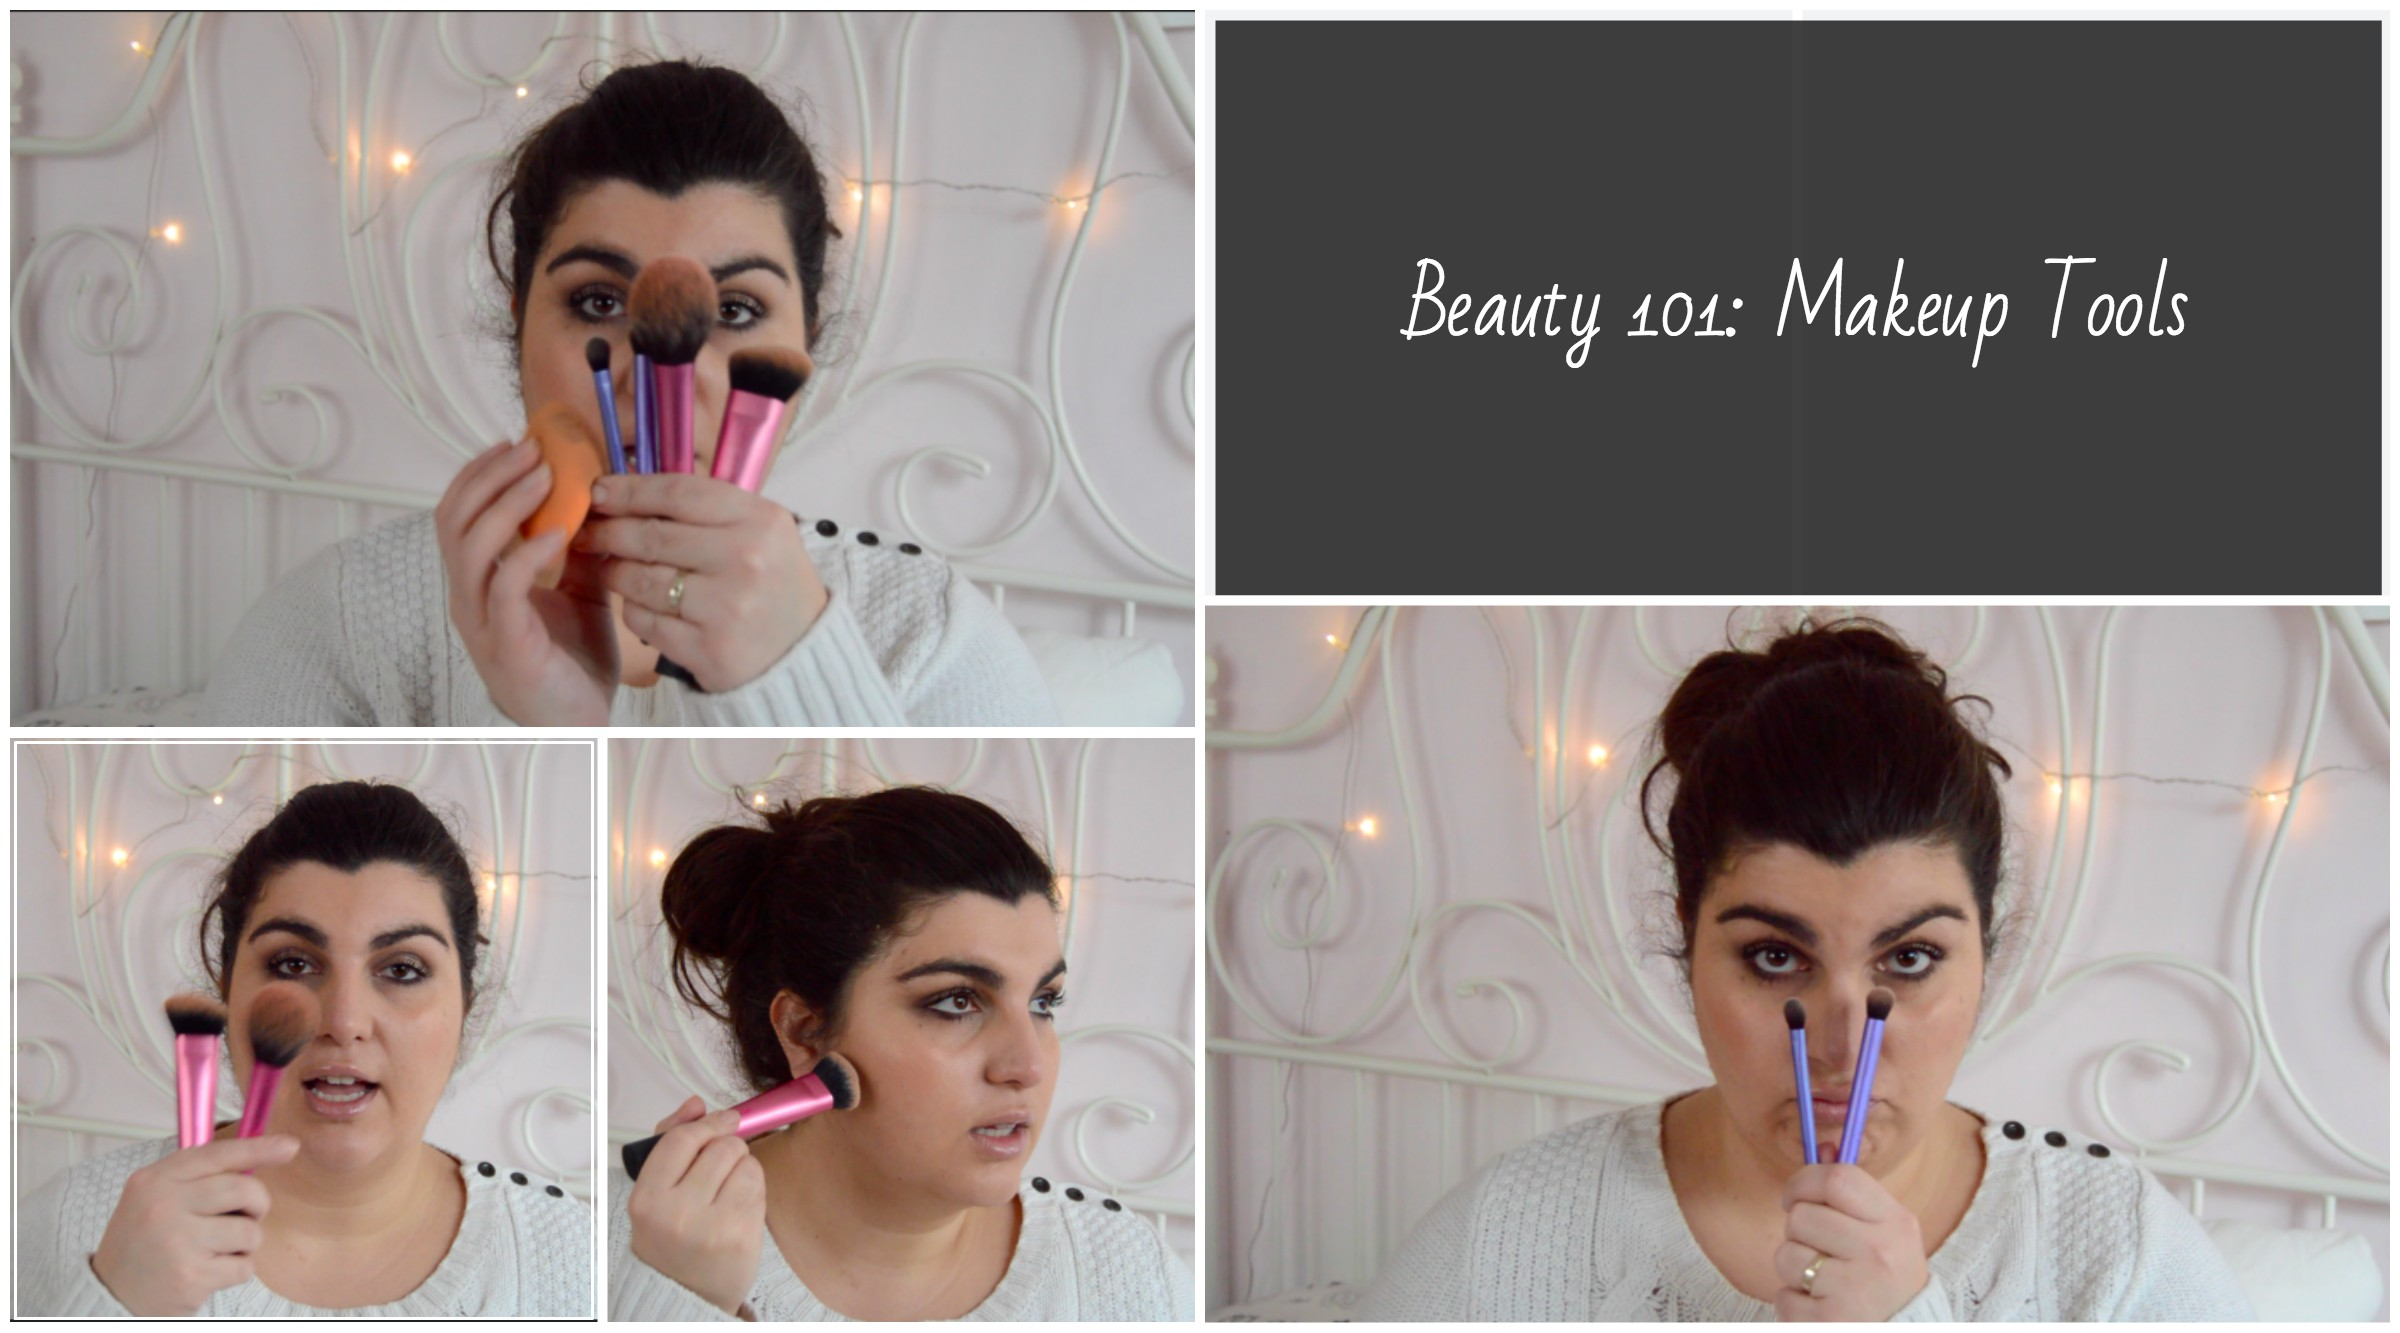 make up 101 beauty tools thumb